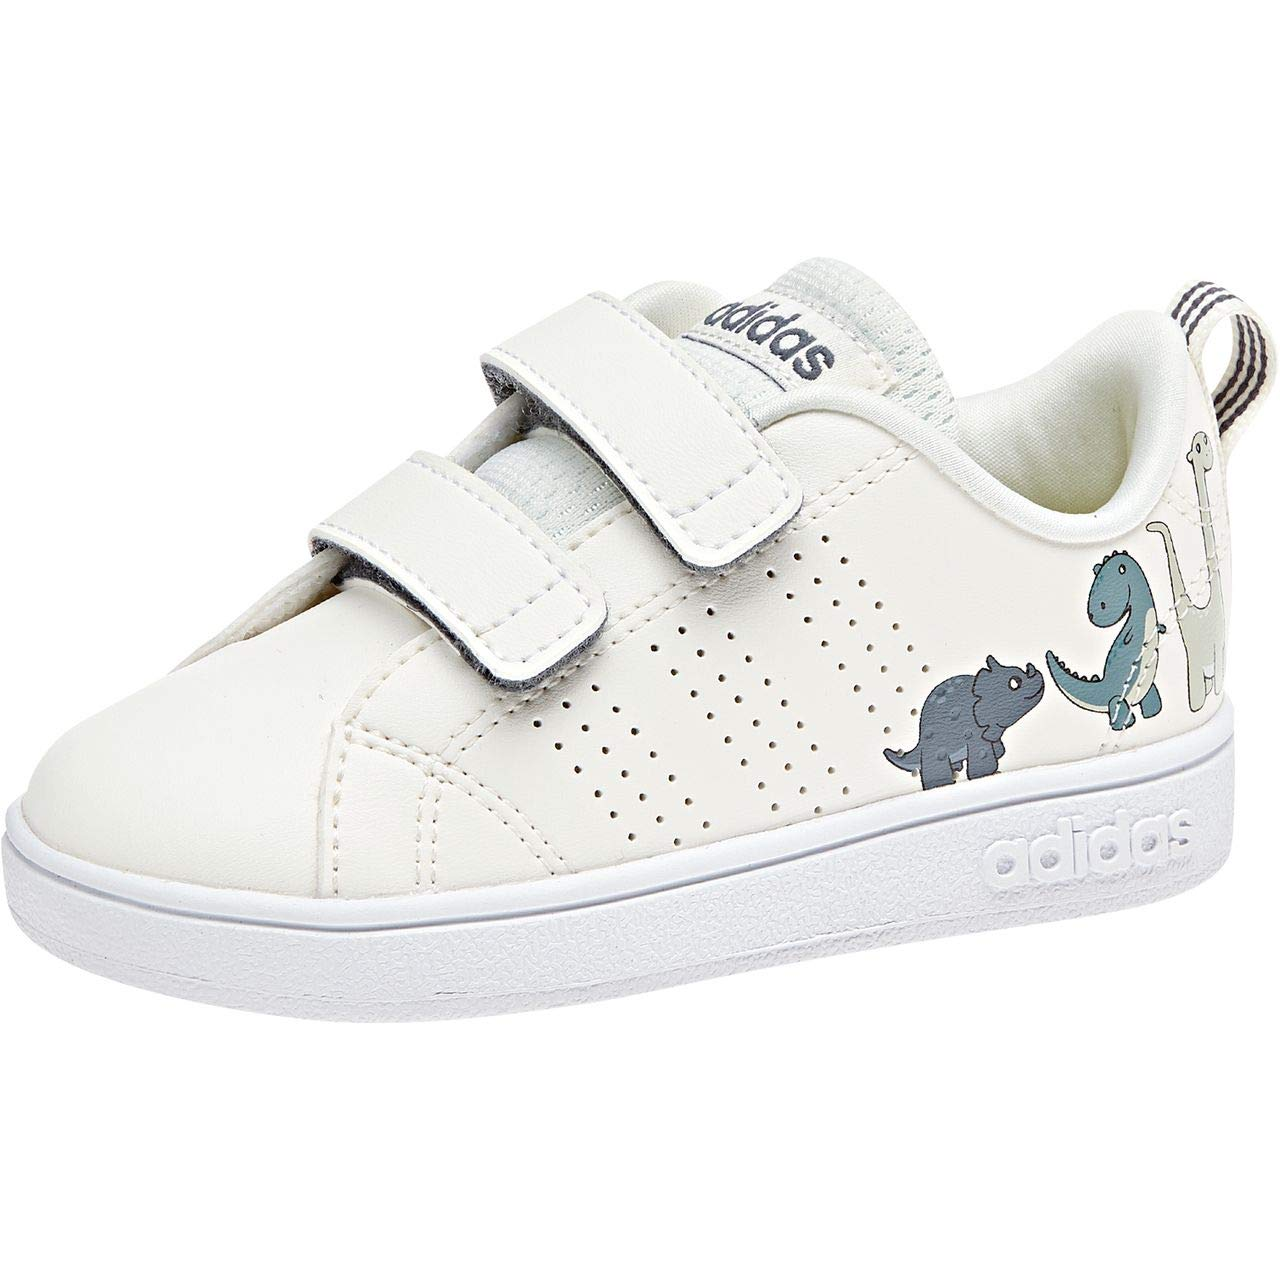 more photos bc9cd c5e1f adidas Unisex Kids  Vs Adv Cl CMF Inf Fitness Shoes, White Blanub Onix 000  7 UK  Amazon.co.uk  Shoes   Bags